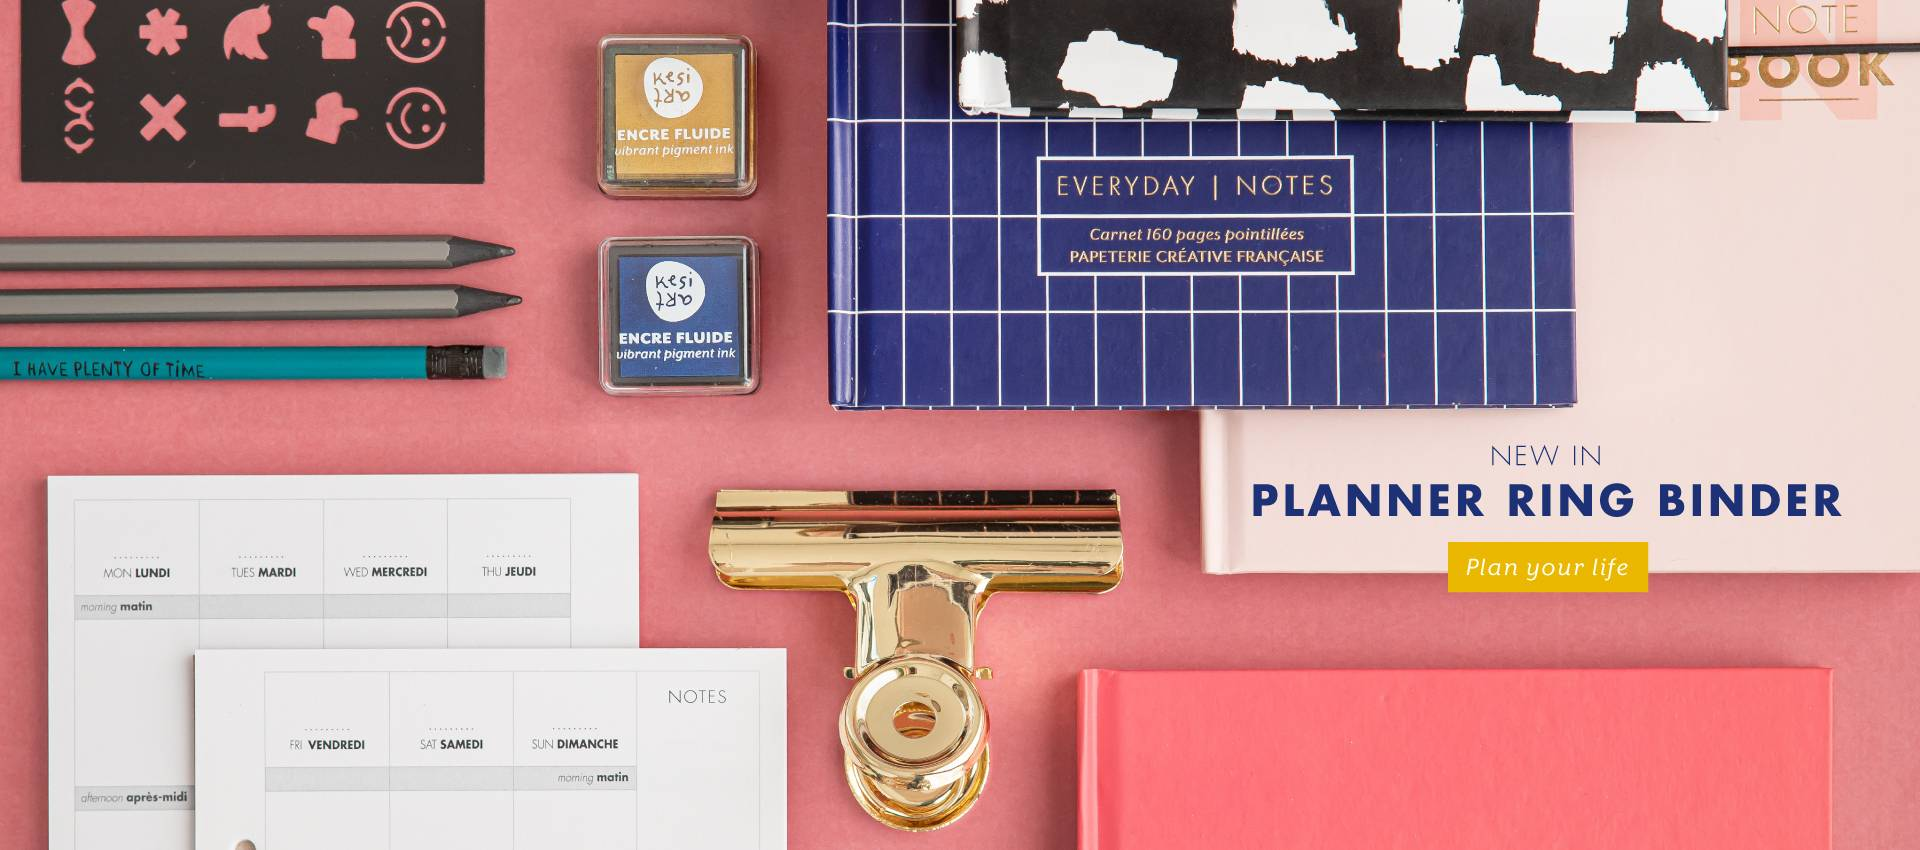 Diary in ring binder format: the planner to organize your life!